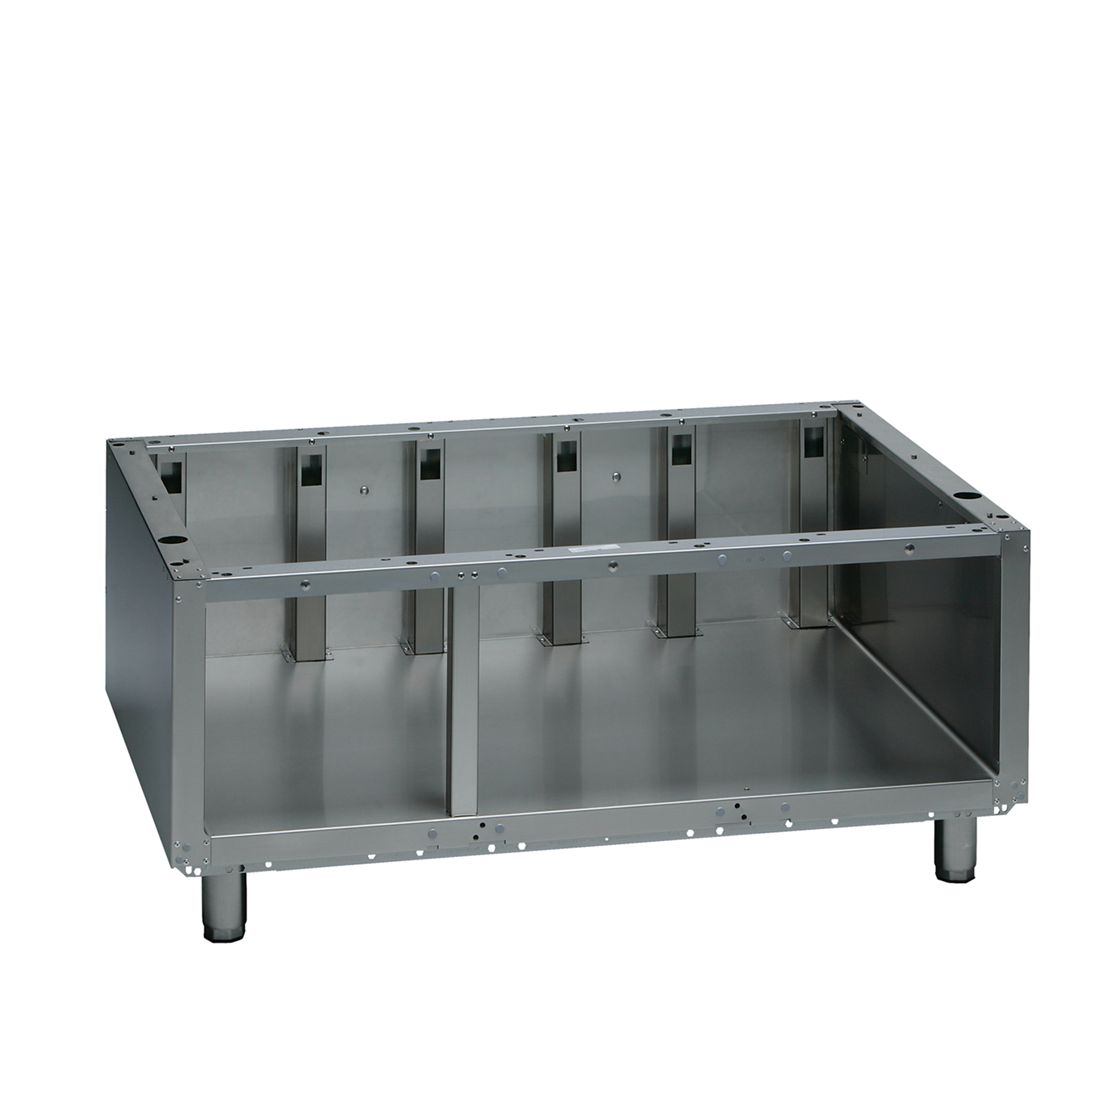 Fagor open front stand to suit -15 models in 900 series MB9-15